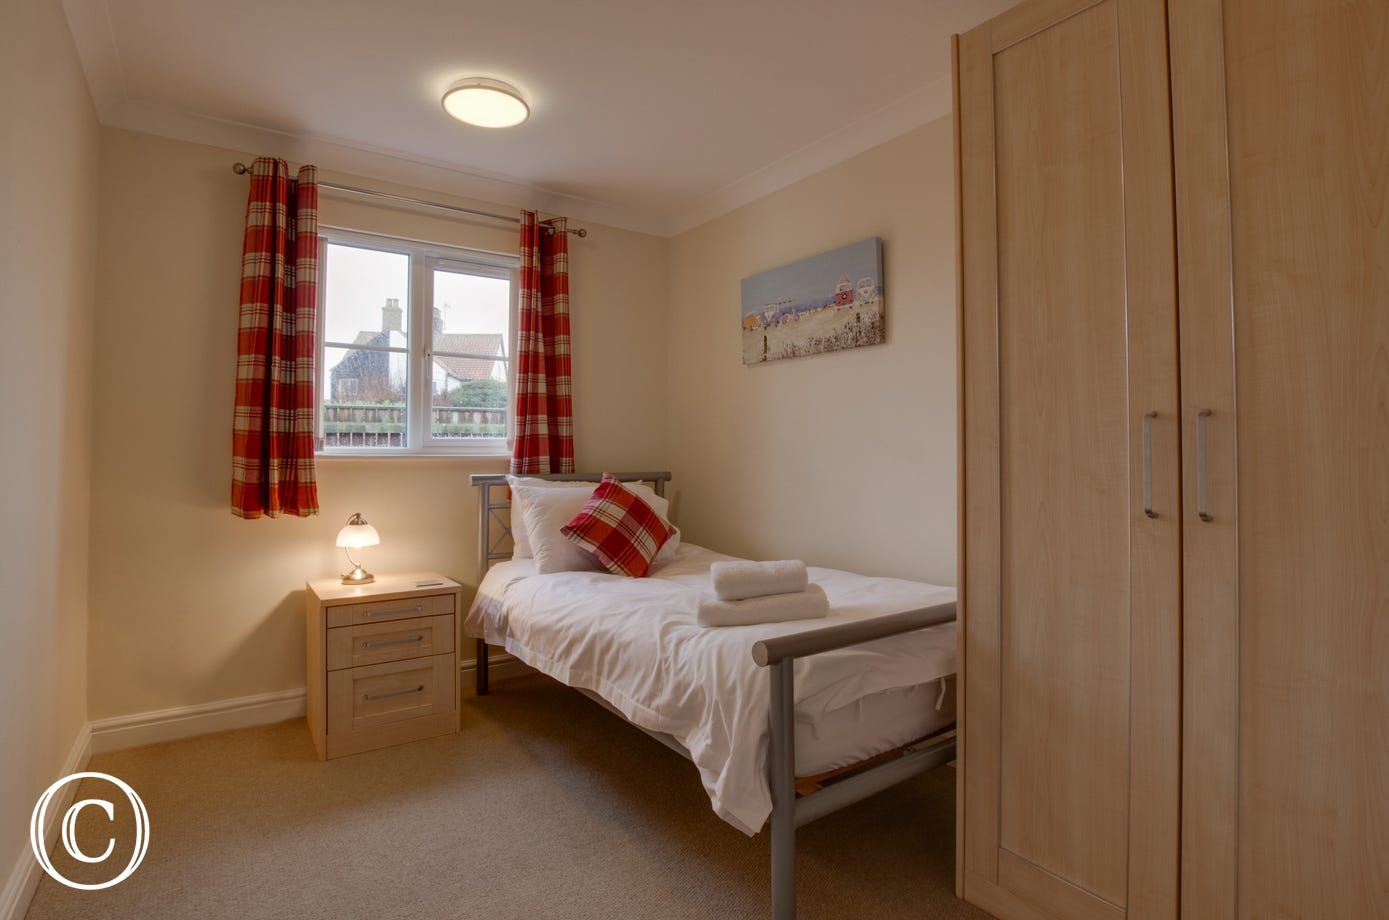 Bedroom 3 with single bed & bedside table